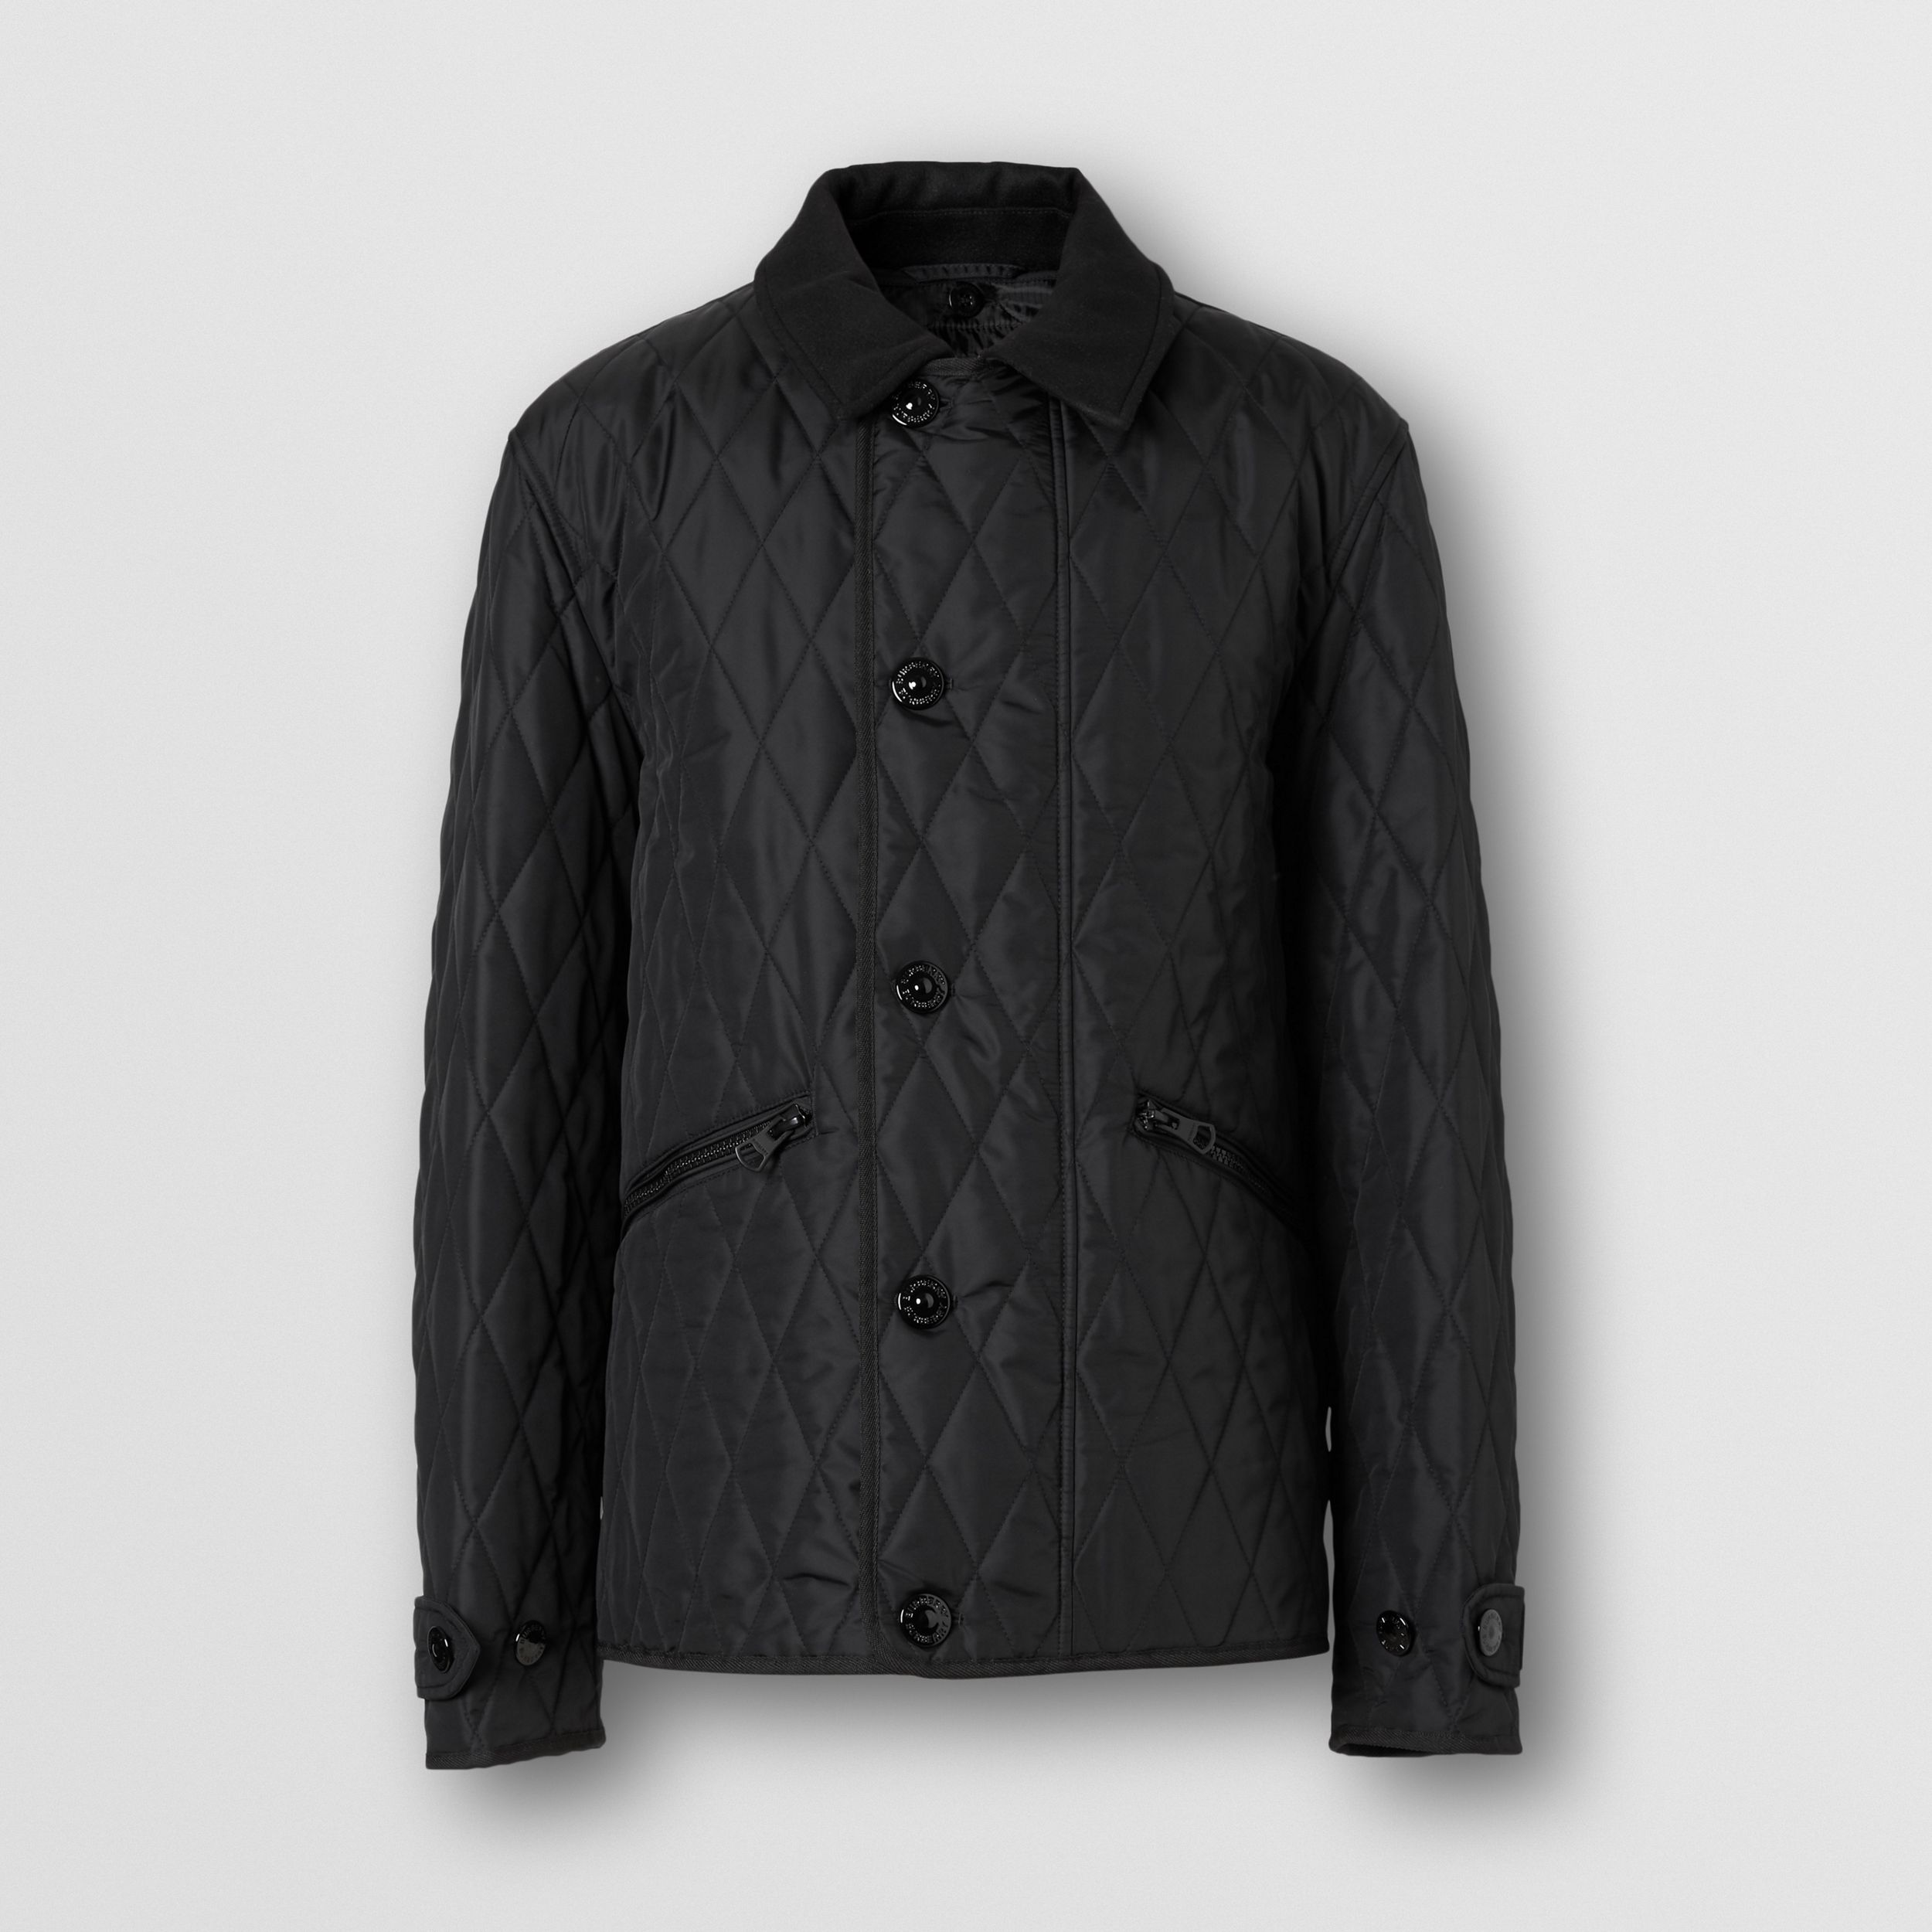 Diamond Quilted Jacket with Warmer in Black - Men | Burberry - 4